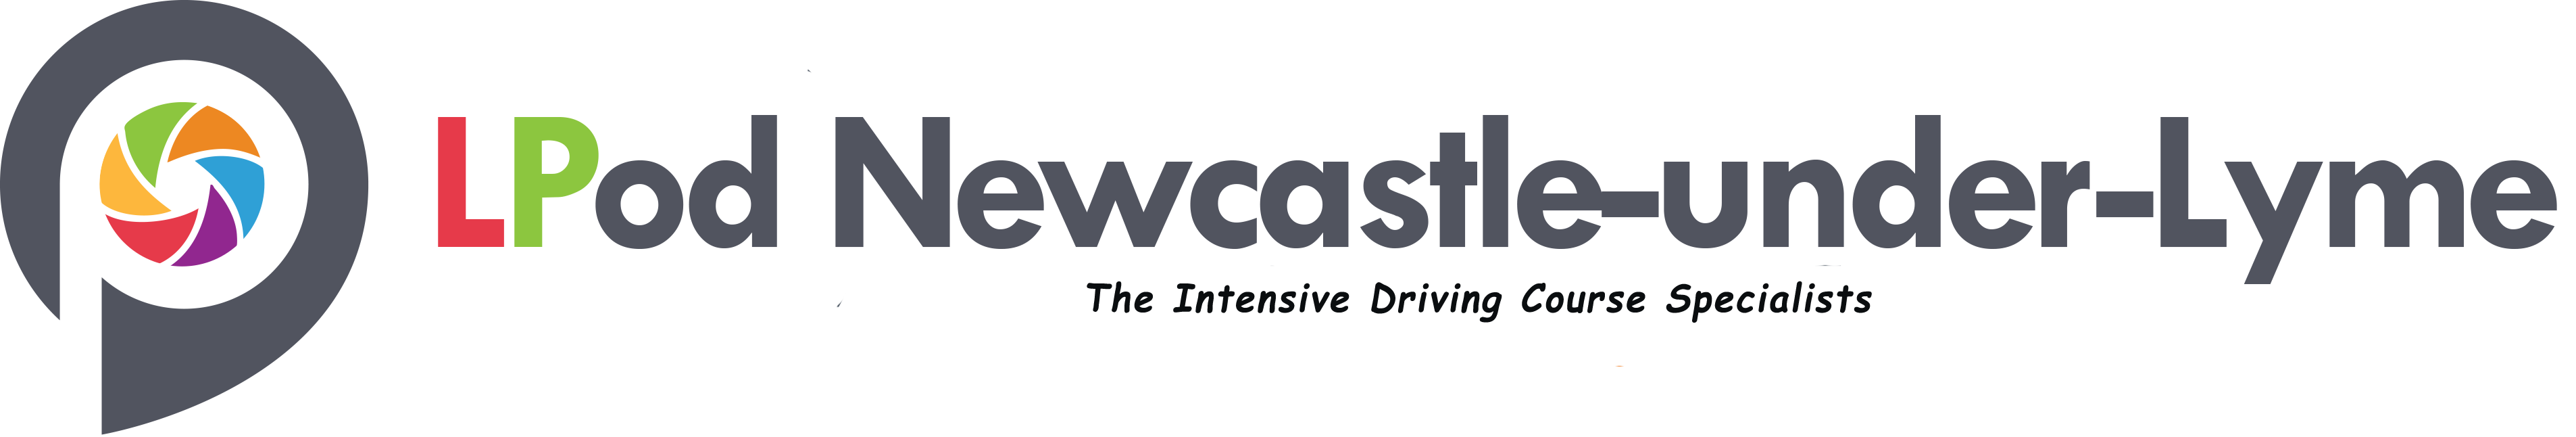 intensive driving courses Newcastle-under-Lyme